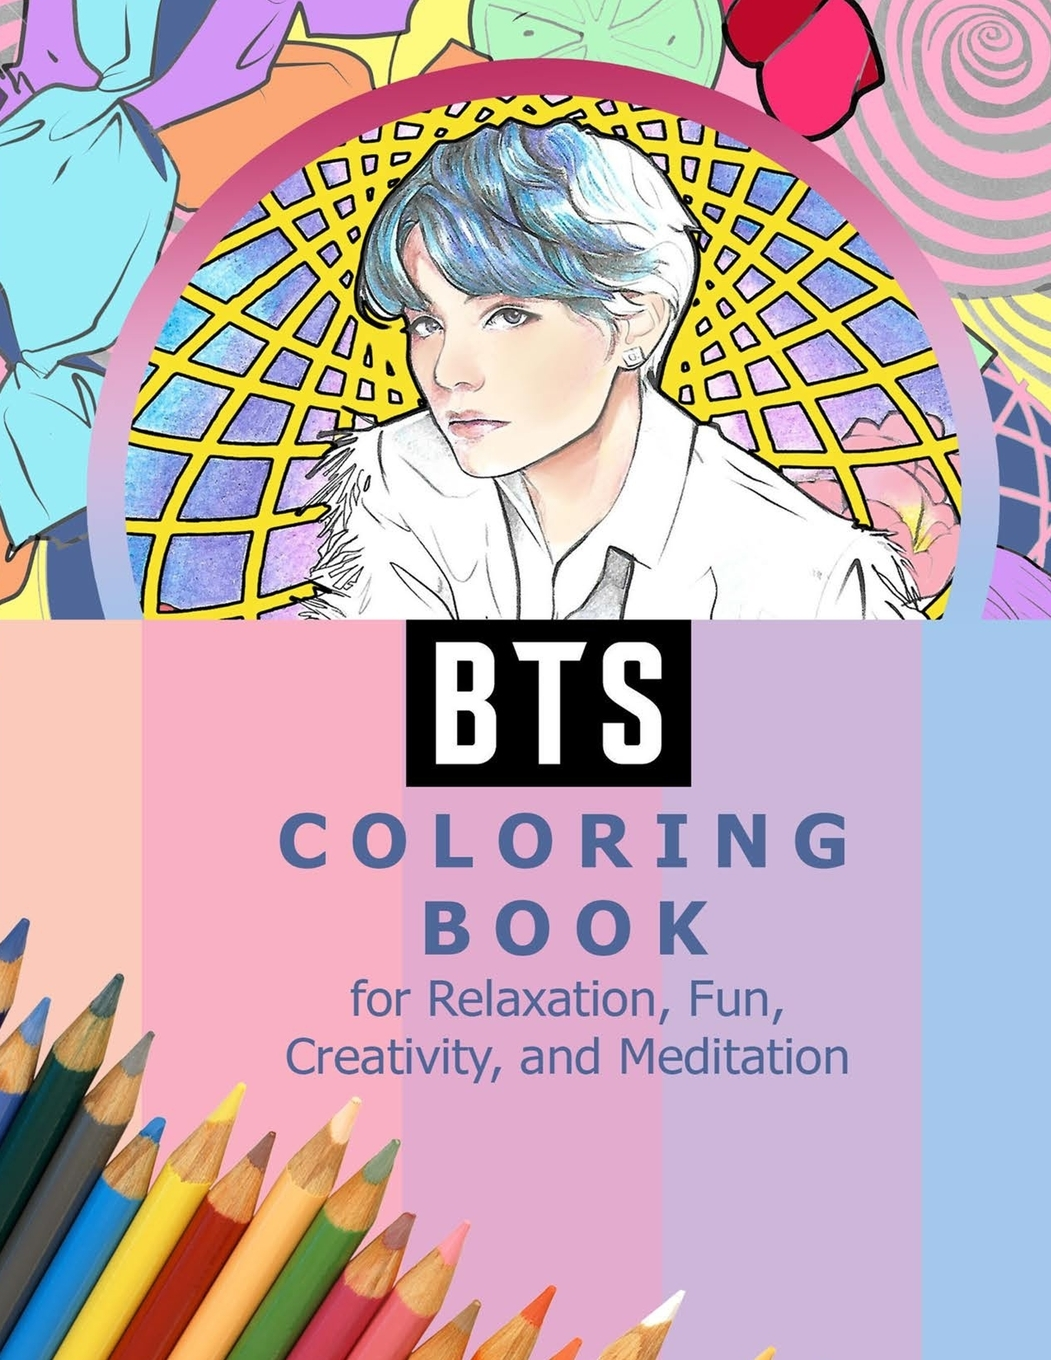 BTS Coloring Book for Relaxation, Fun, Creativity, and Meditation: Beautiful Stress Relieving Coloring Pages for ARMY and Kpop fans I Purple U 8.5 in by 11 in Size, Hand-Drawn, RM, Jimin, V, Jungkook,